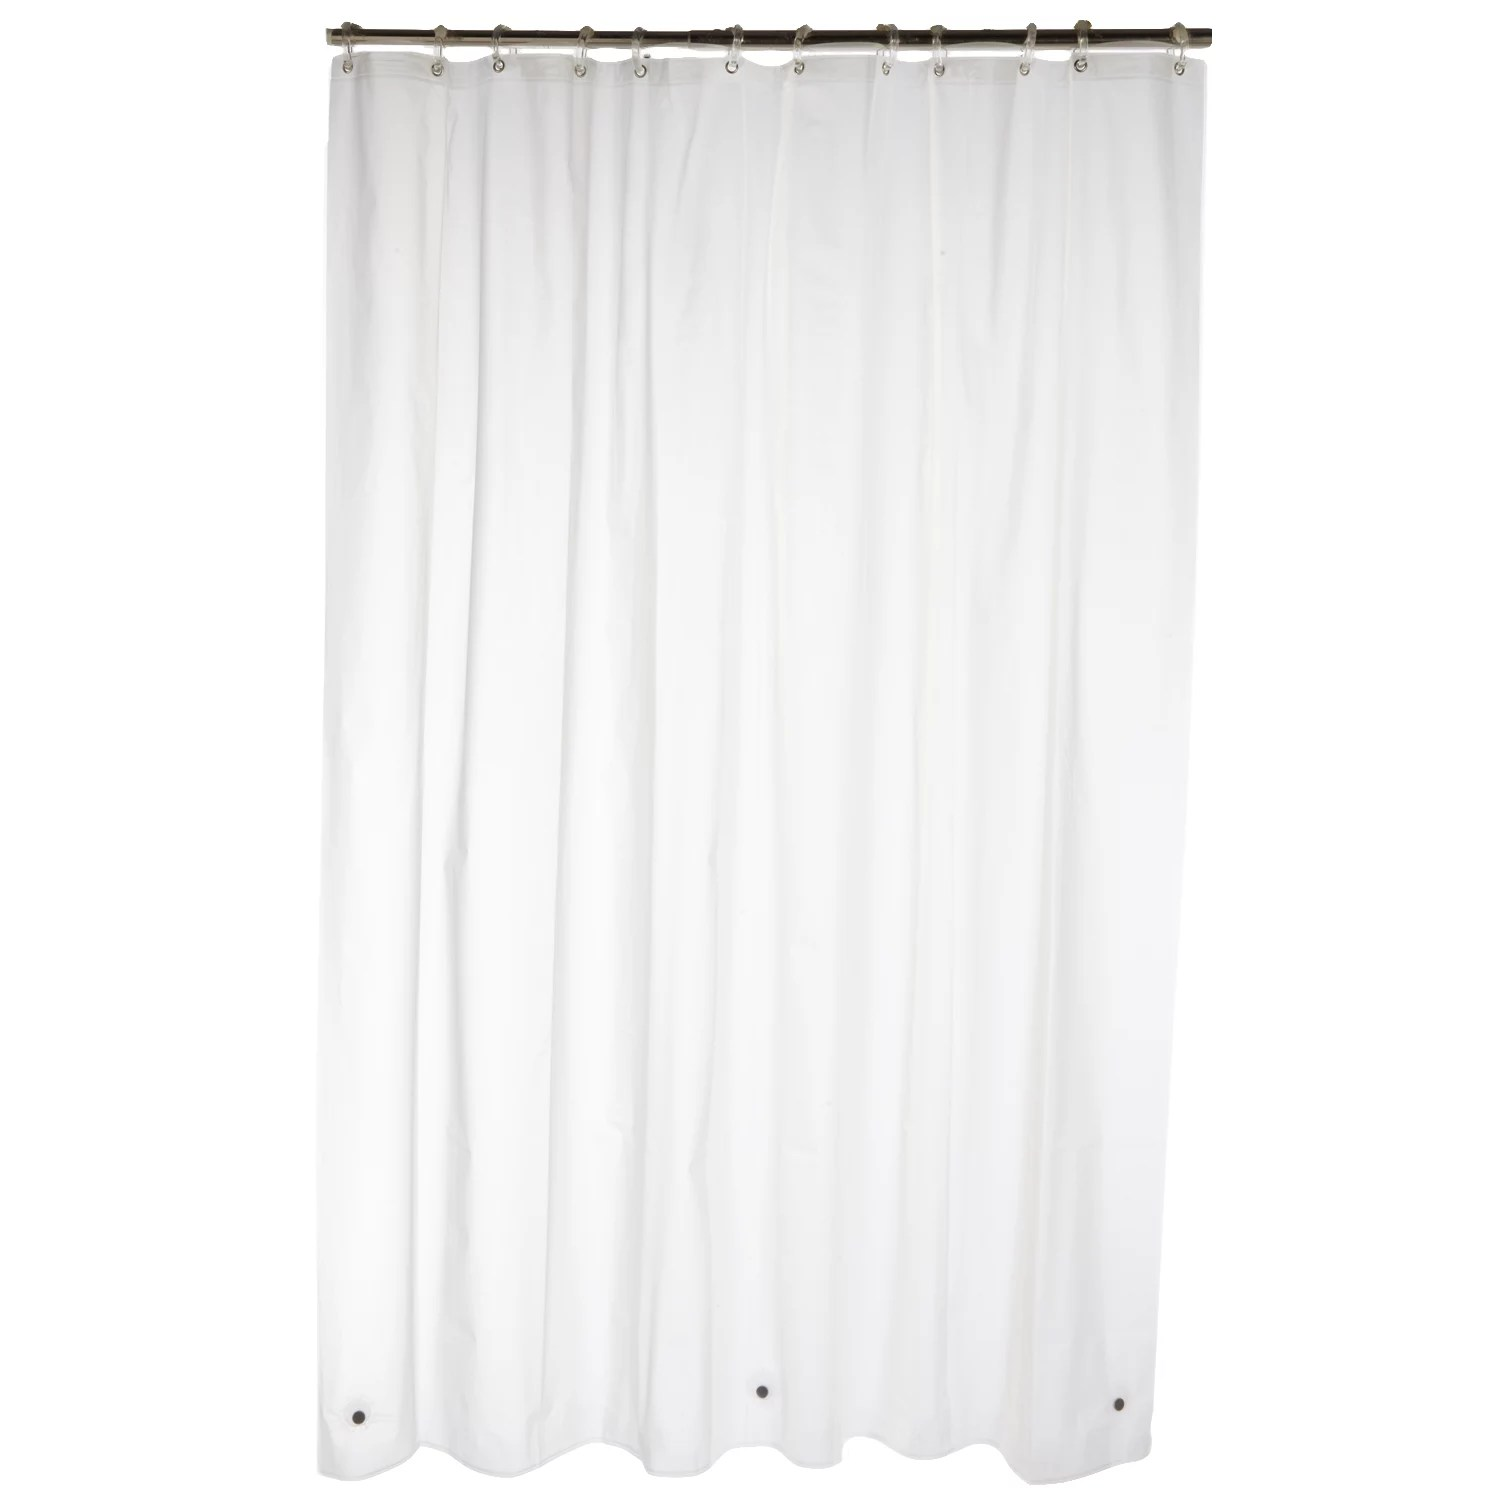 Apt 9 Shower Curtain Home Classics Peva Super Soft Shower Curtain Liner